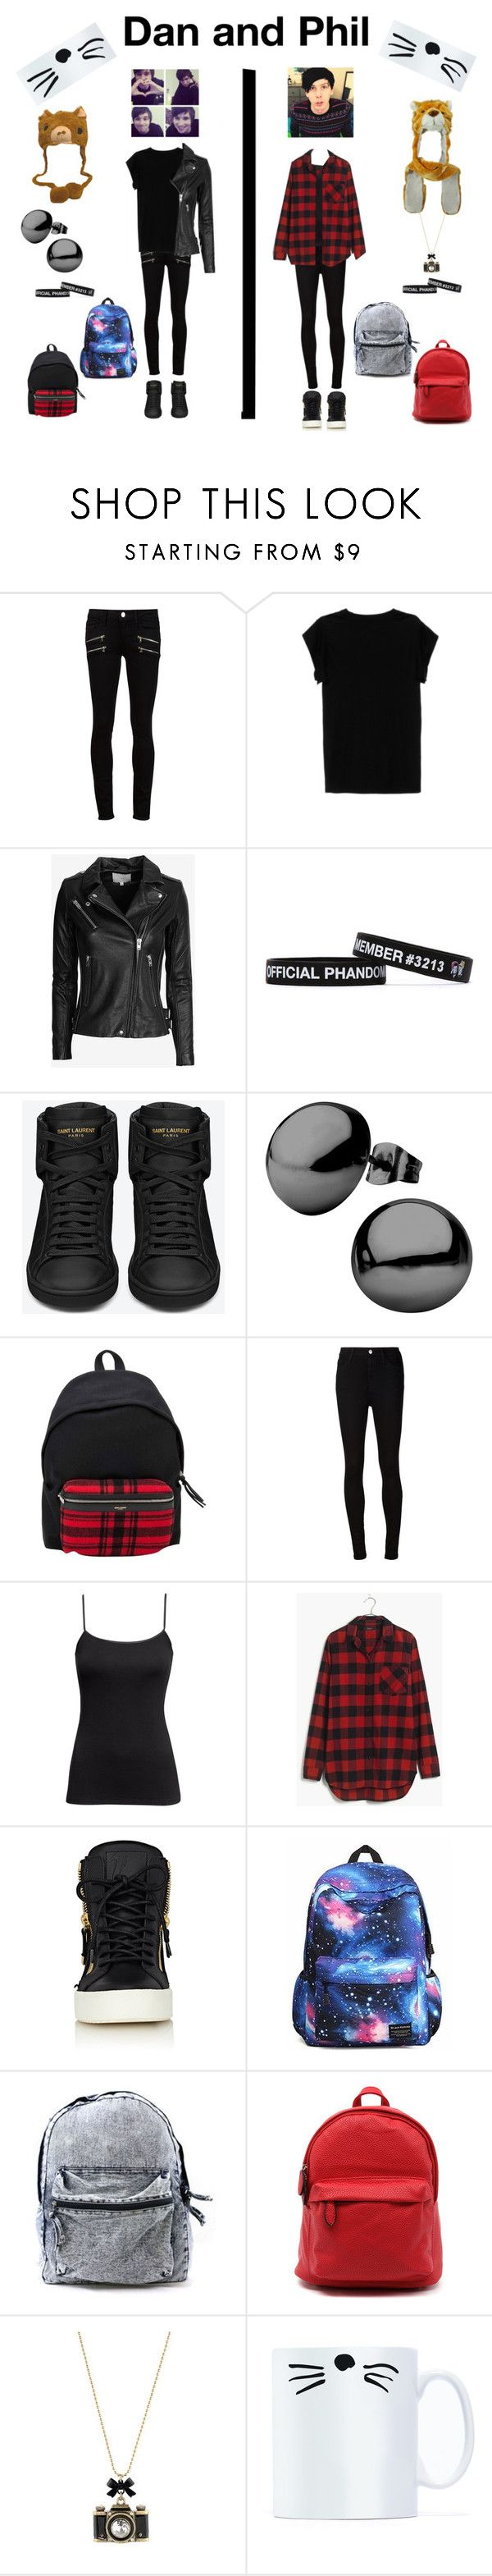 """DAN AND PHIL"" by plushierhino ❤ liked on Polyvore featuring Paige Denim, Isabel Marant, IRO, Yves Saint Laurent, AG Adriano Goldschmied, H&M, Madewell, Giuseppe Zanotti, Betsey Johnson and danisnotonfire"